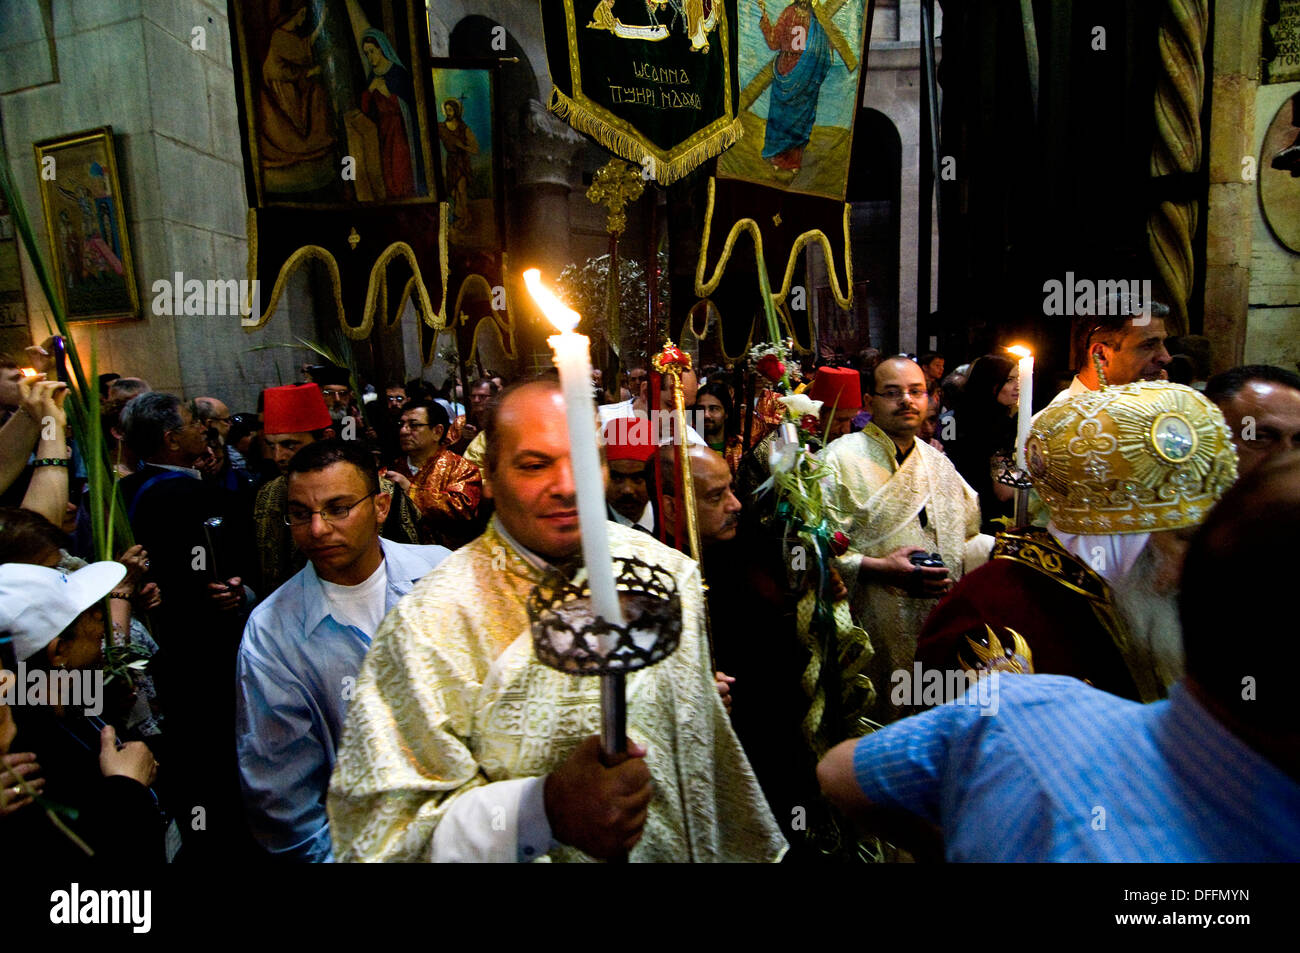 Palm Sunday ceremonies inside  the church of the holy sepulchre in Jerusalem. - Stock Image